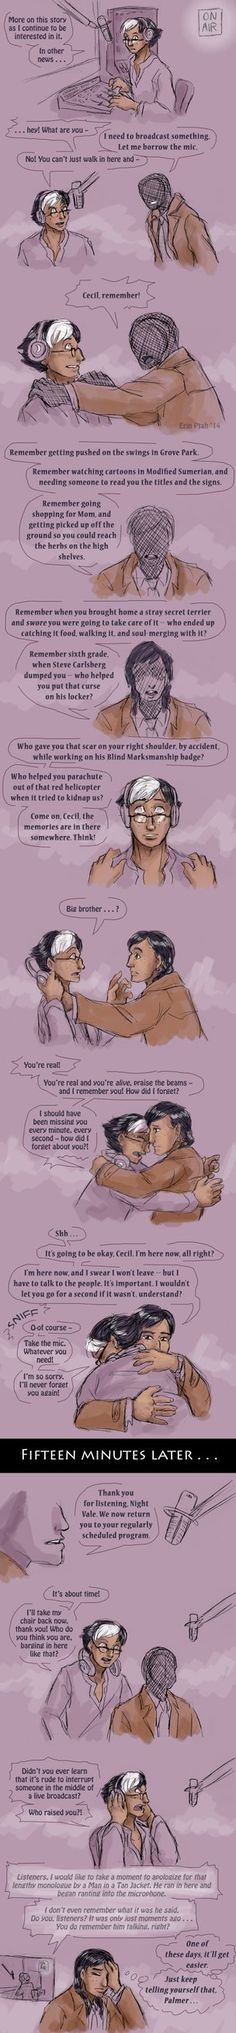 Happens Every Time by ErinPtah This is from Welcome to Nightvale. It is a theory behind who the man in the tan jacket really is.